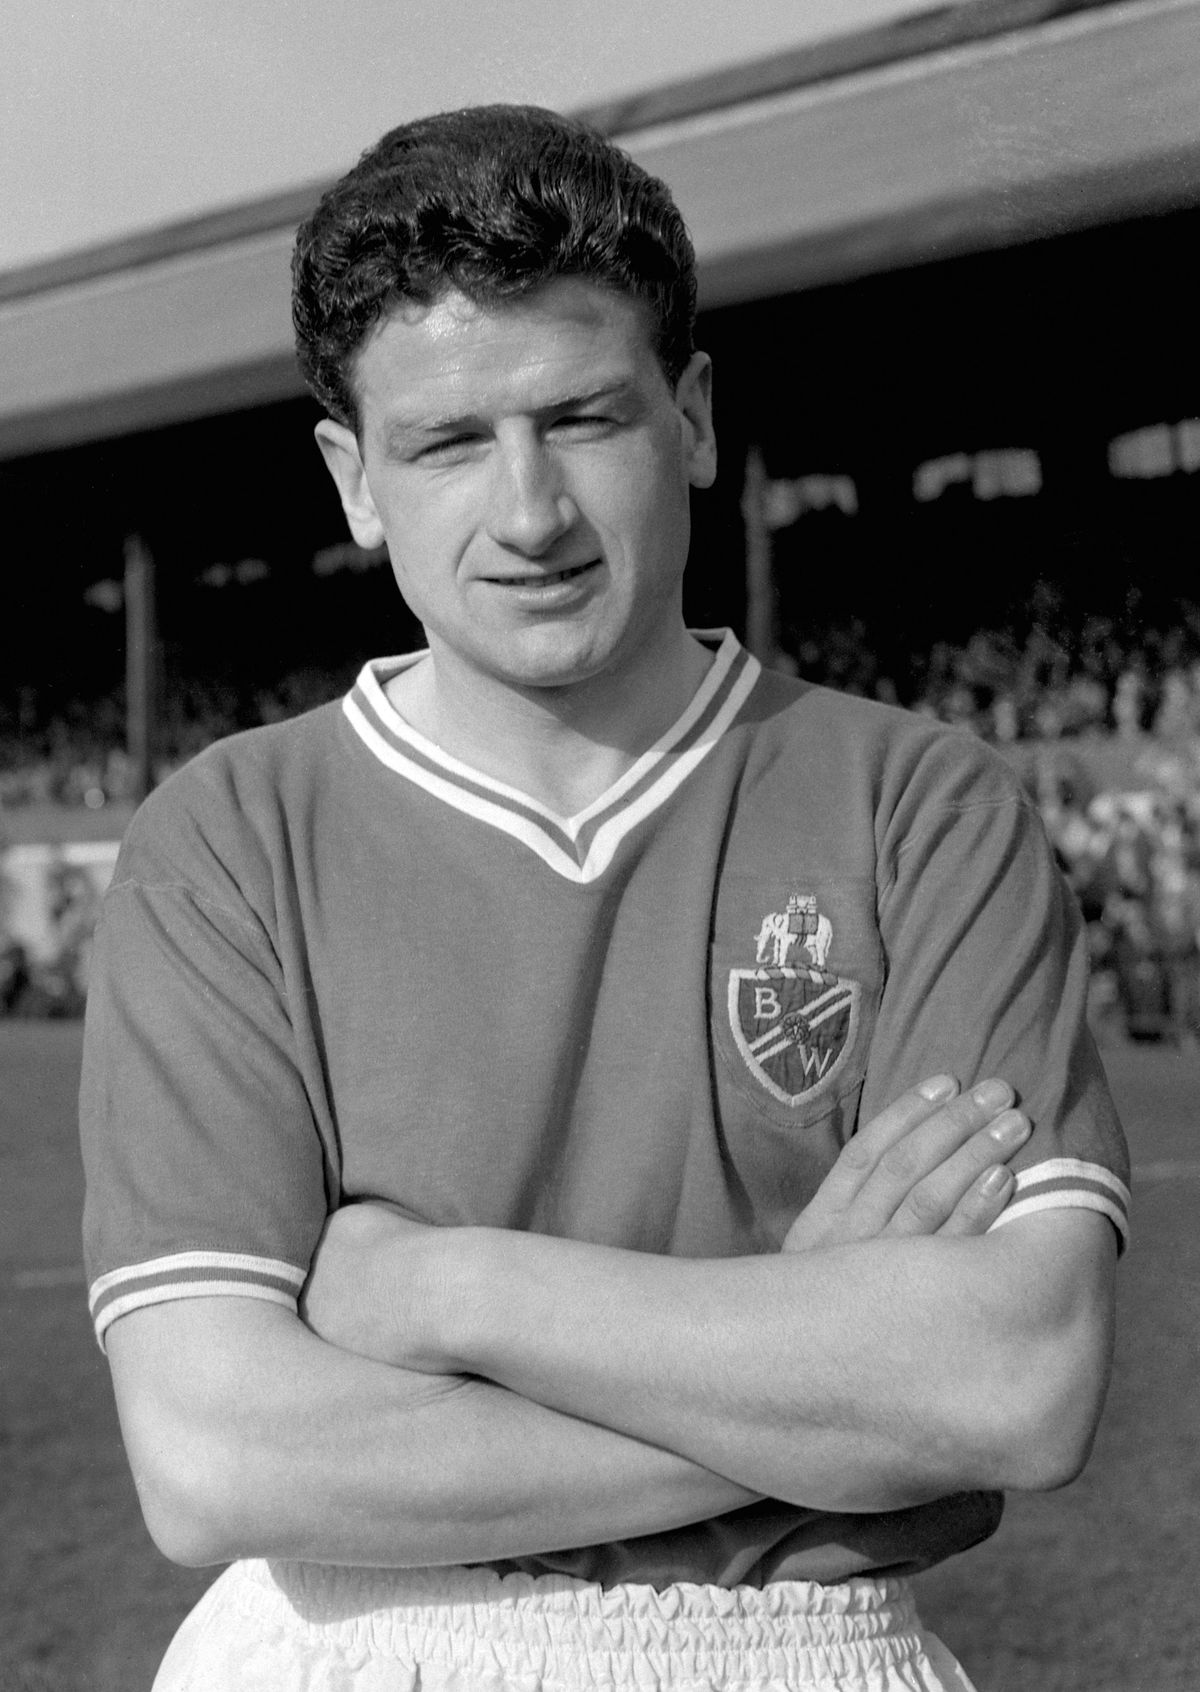 Soccer - Division One - Bolton Wanderers Photocall - Roy Hartle - Craven Cottage